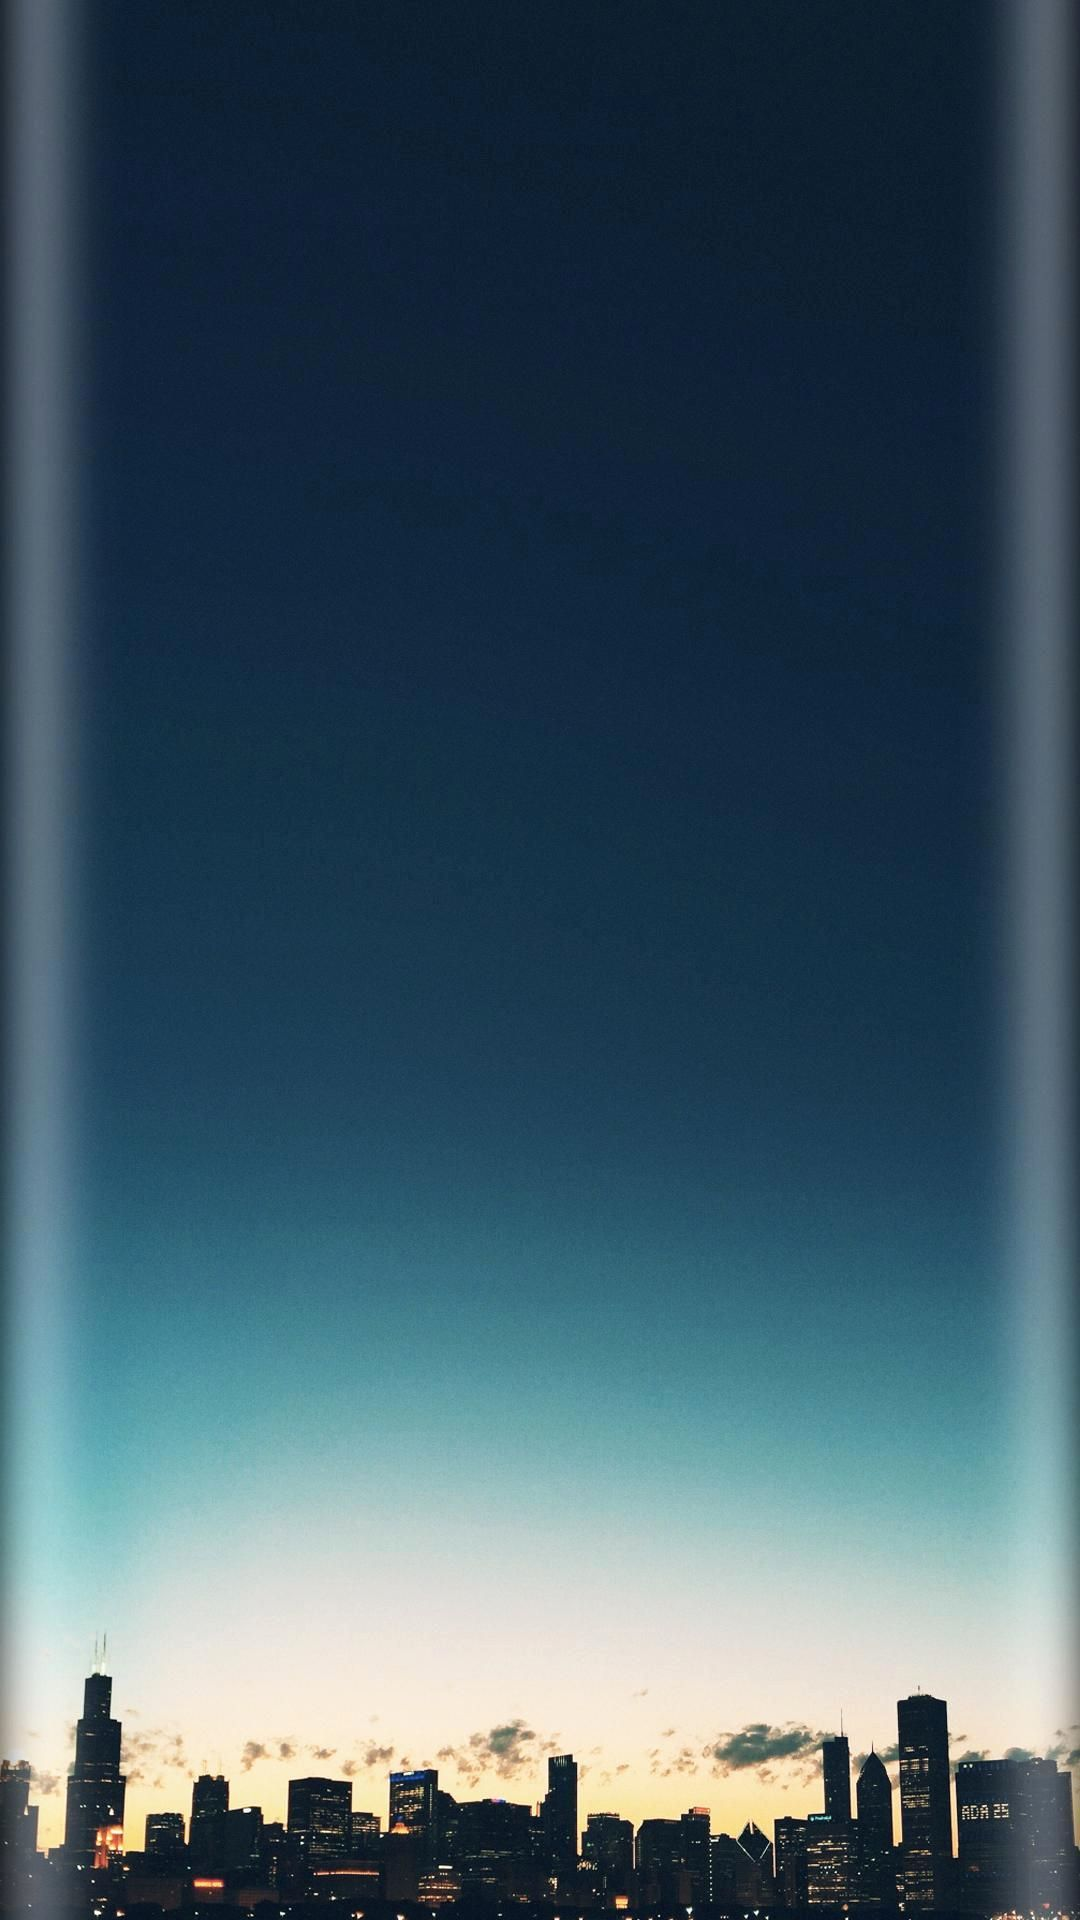 Wallpaper For Galaxy S8 Posted By Zoey Anderson